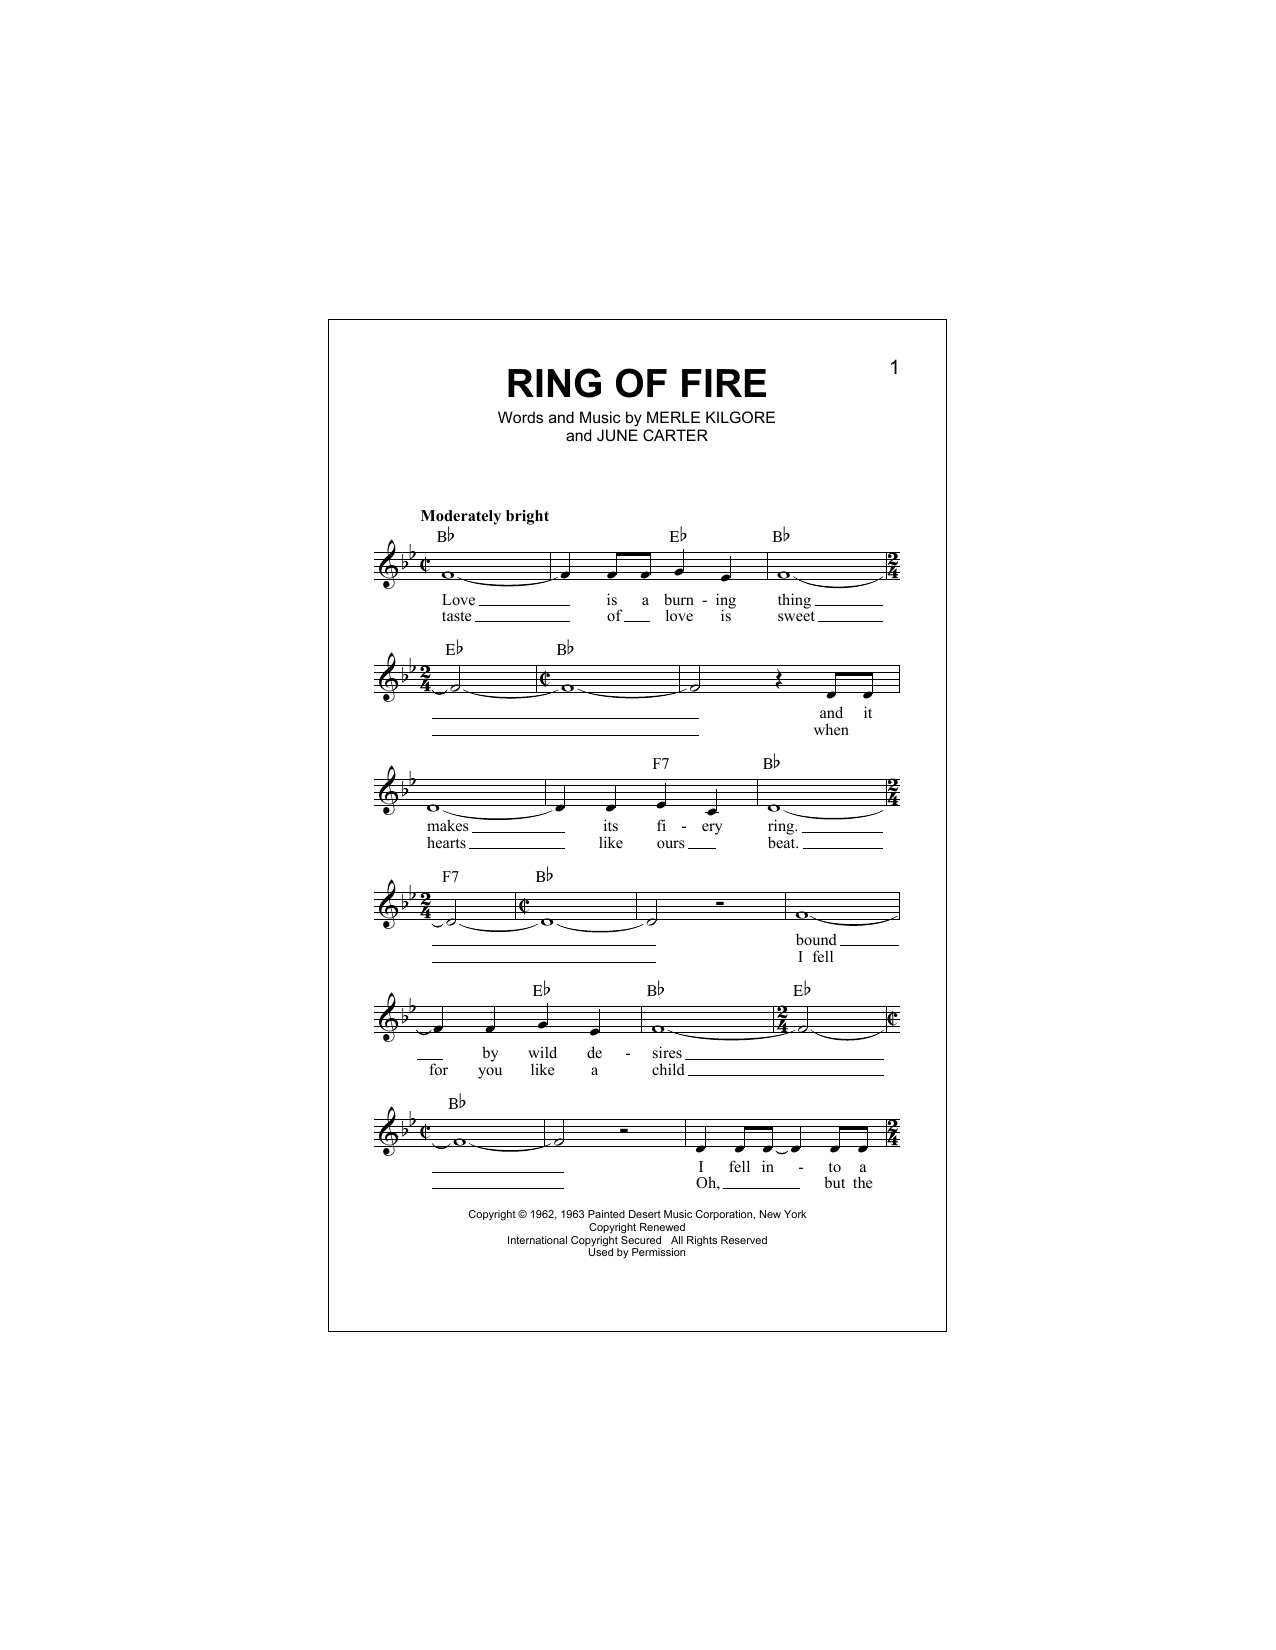 Johnny Cash Ring Of Fire Sheet Music Notes Chords Download Printable Melody Line Lyrics Chords Sku 194807